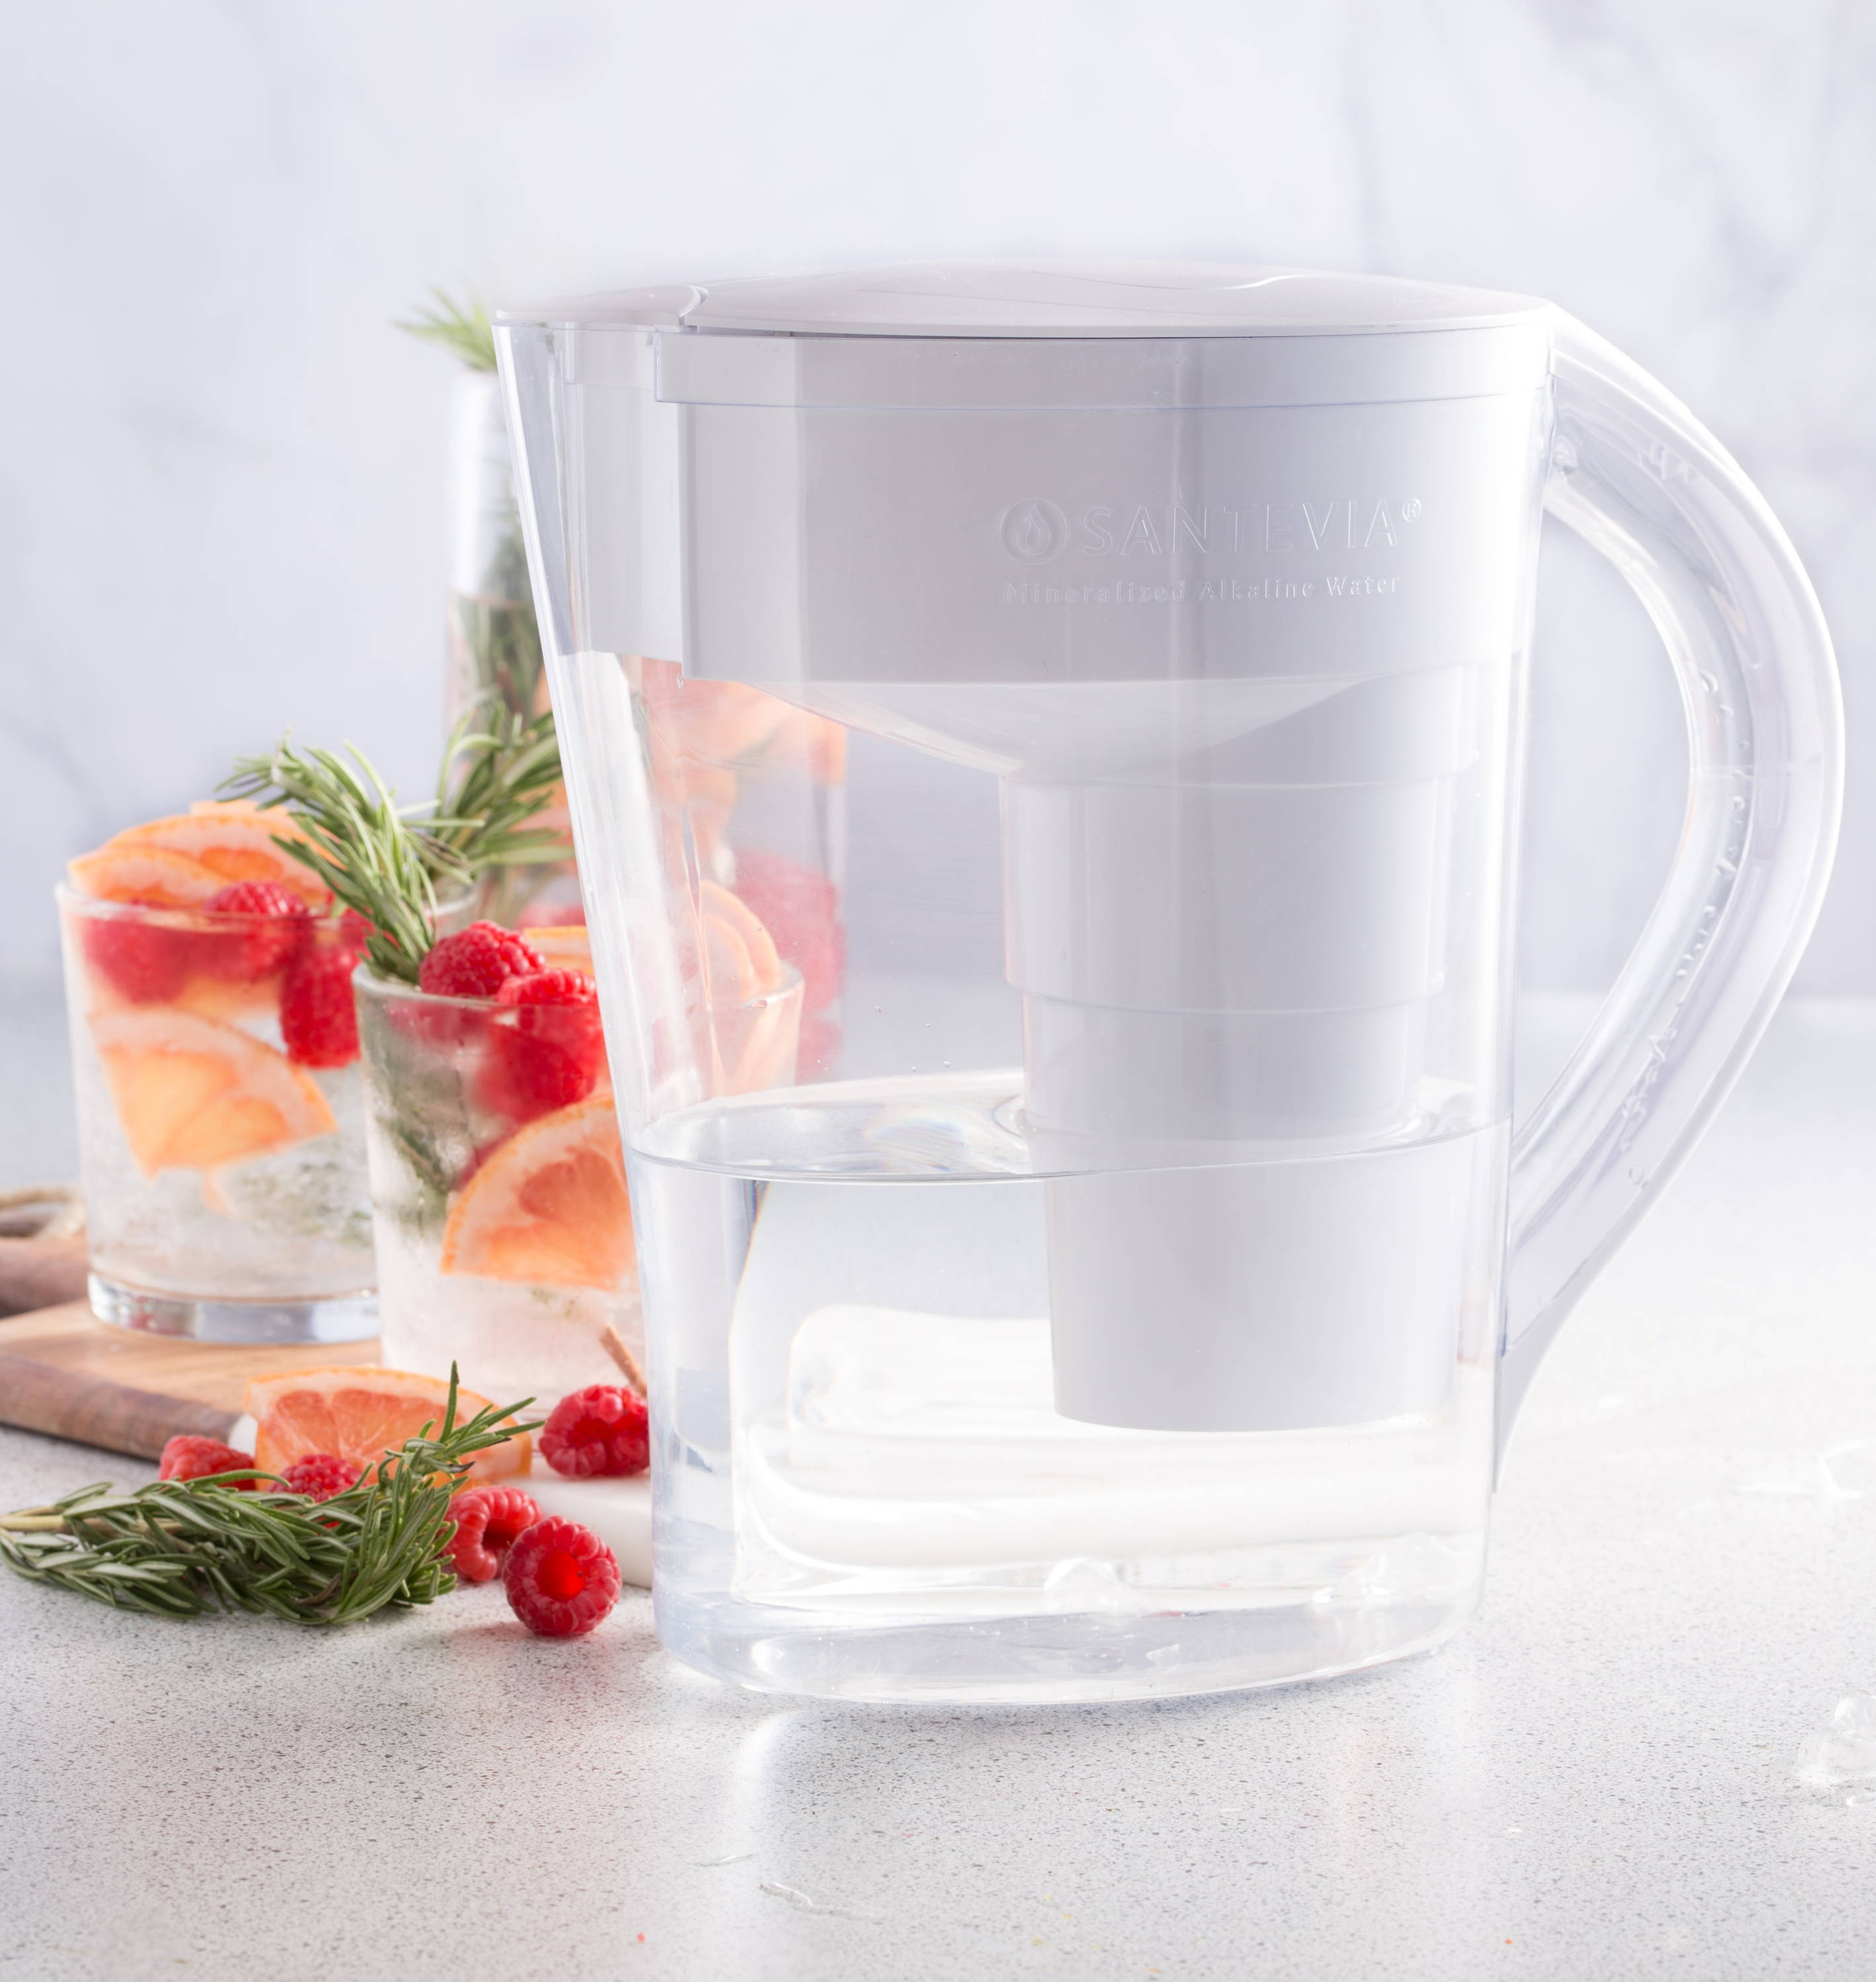 MINA Alkaline Pitcher with two glasses of water infused with rosemary, raspberries, and grapefruit